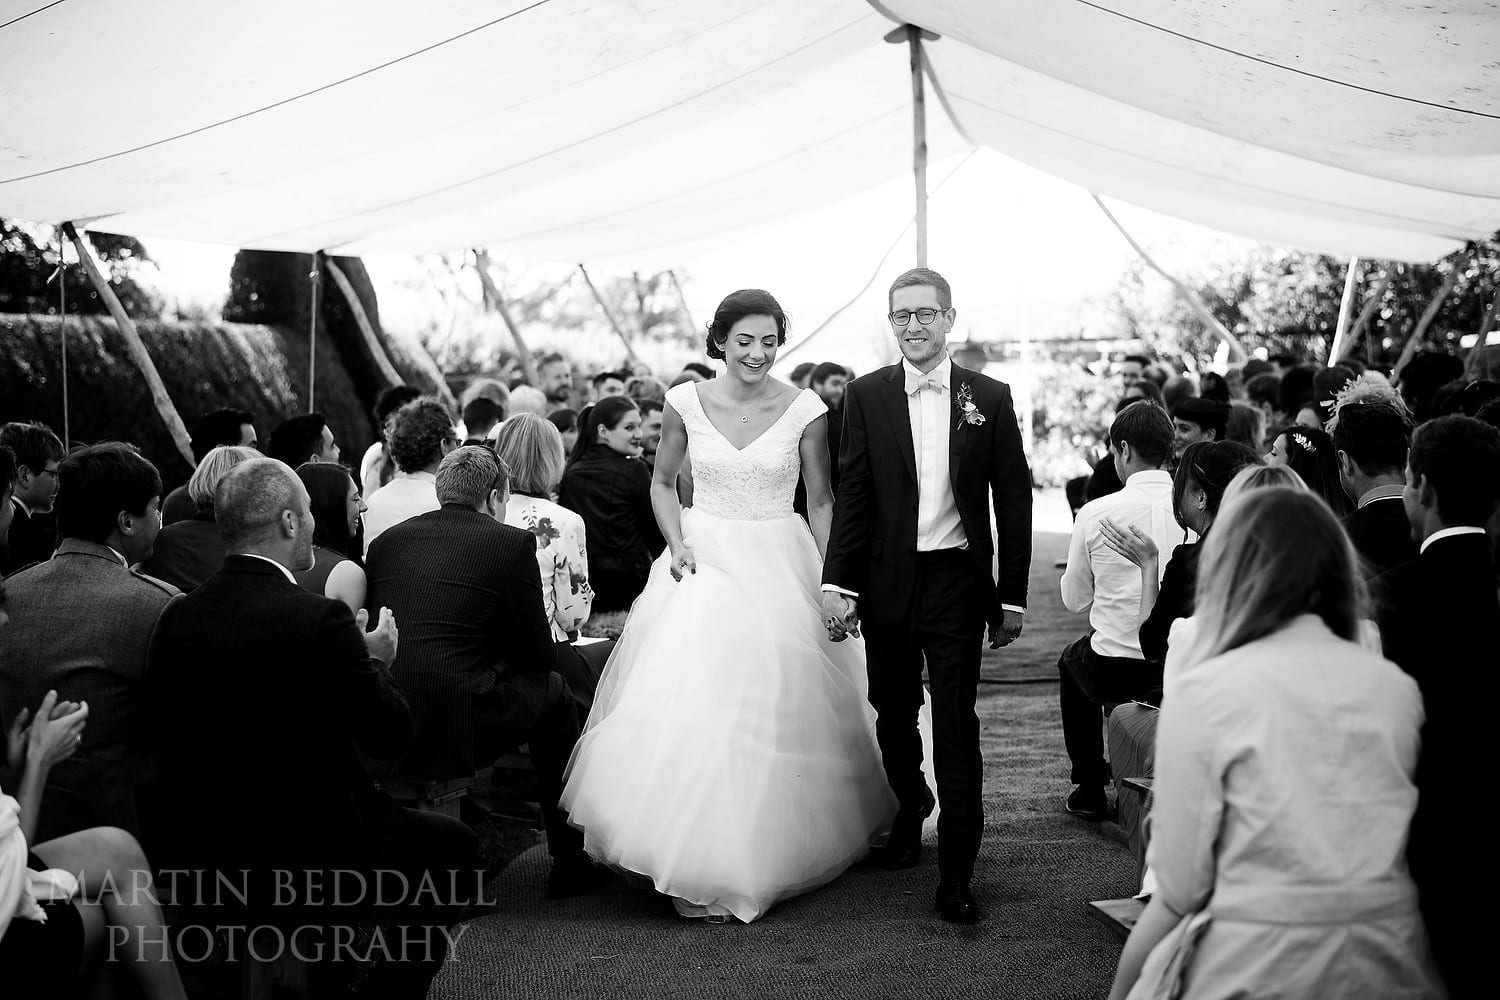 Bride and groom walk back down the aisle at Dewsall Court Wedding